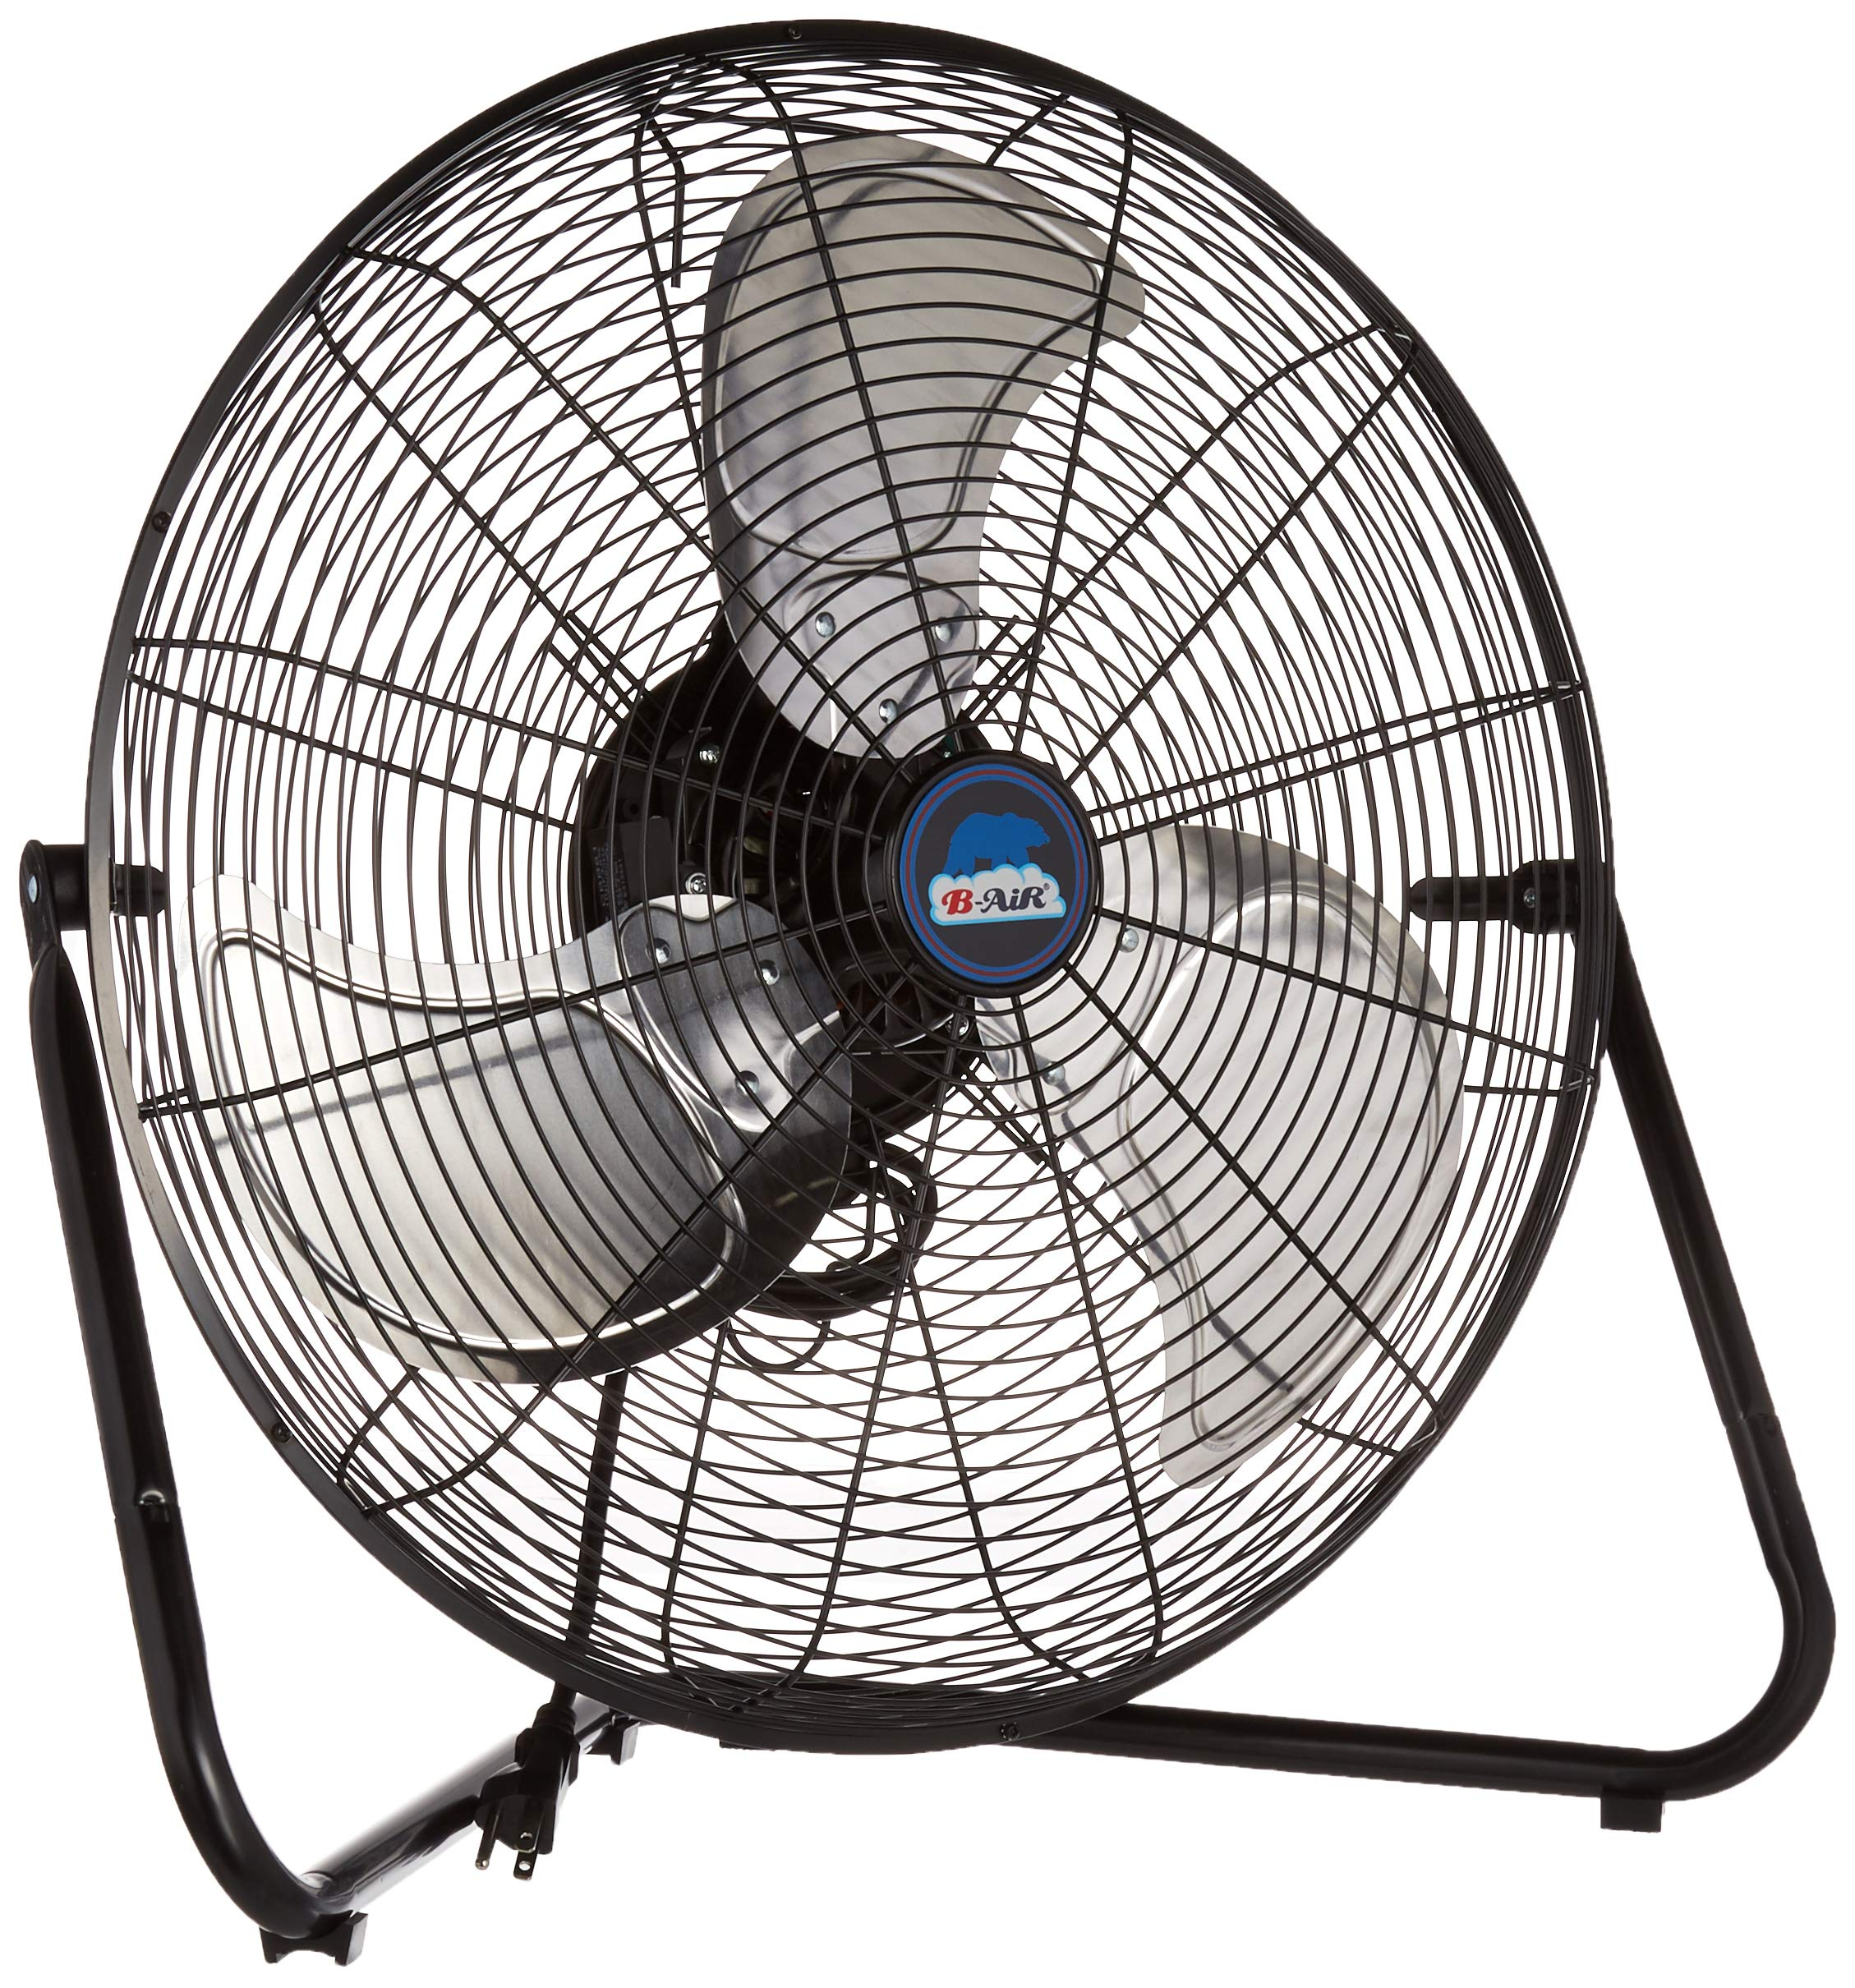 Heavy Duty Fan >> Details About Heavy Duty Fan Industrial Rolling Drum Shop Basement Patio Floor Commercial 20